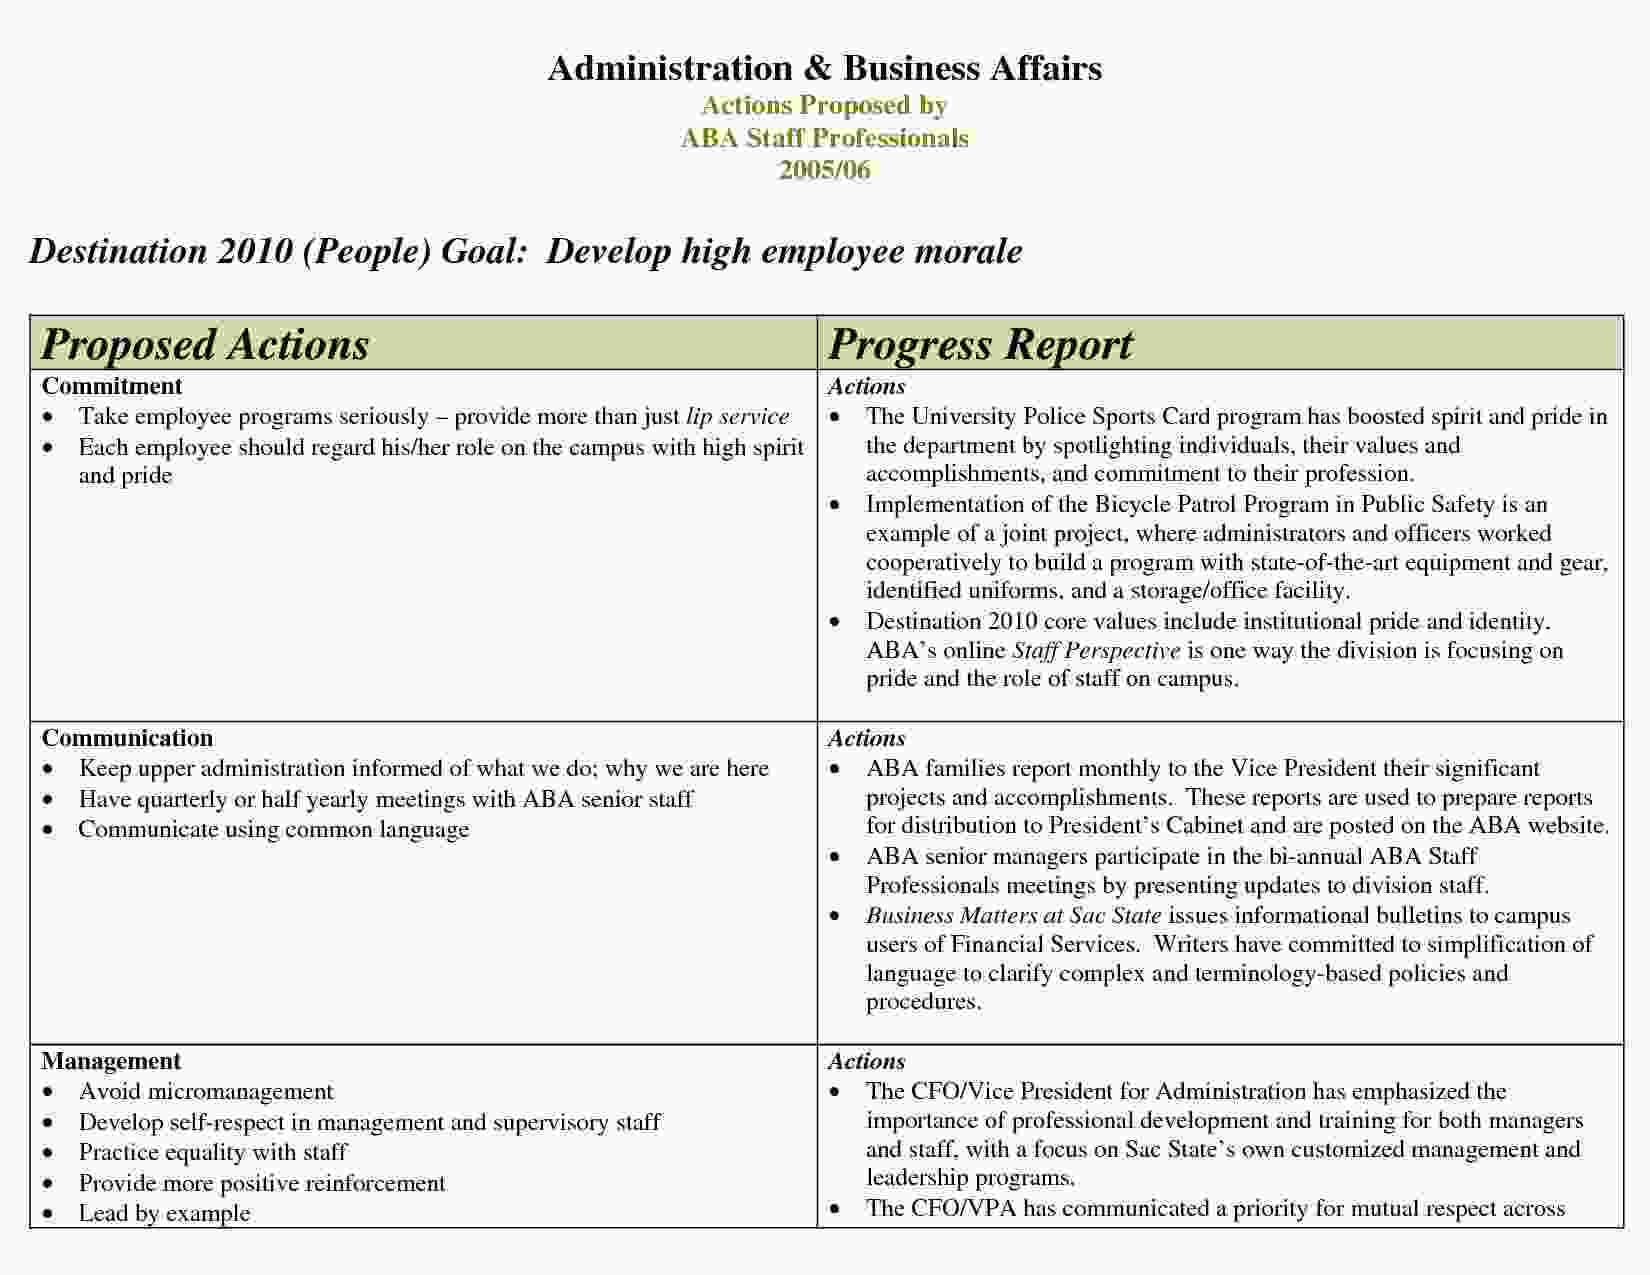 Staff Progress Report Template Cumedorg Cumedorg Throughout Staff Progress Report Template